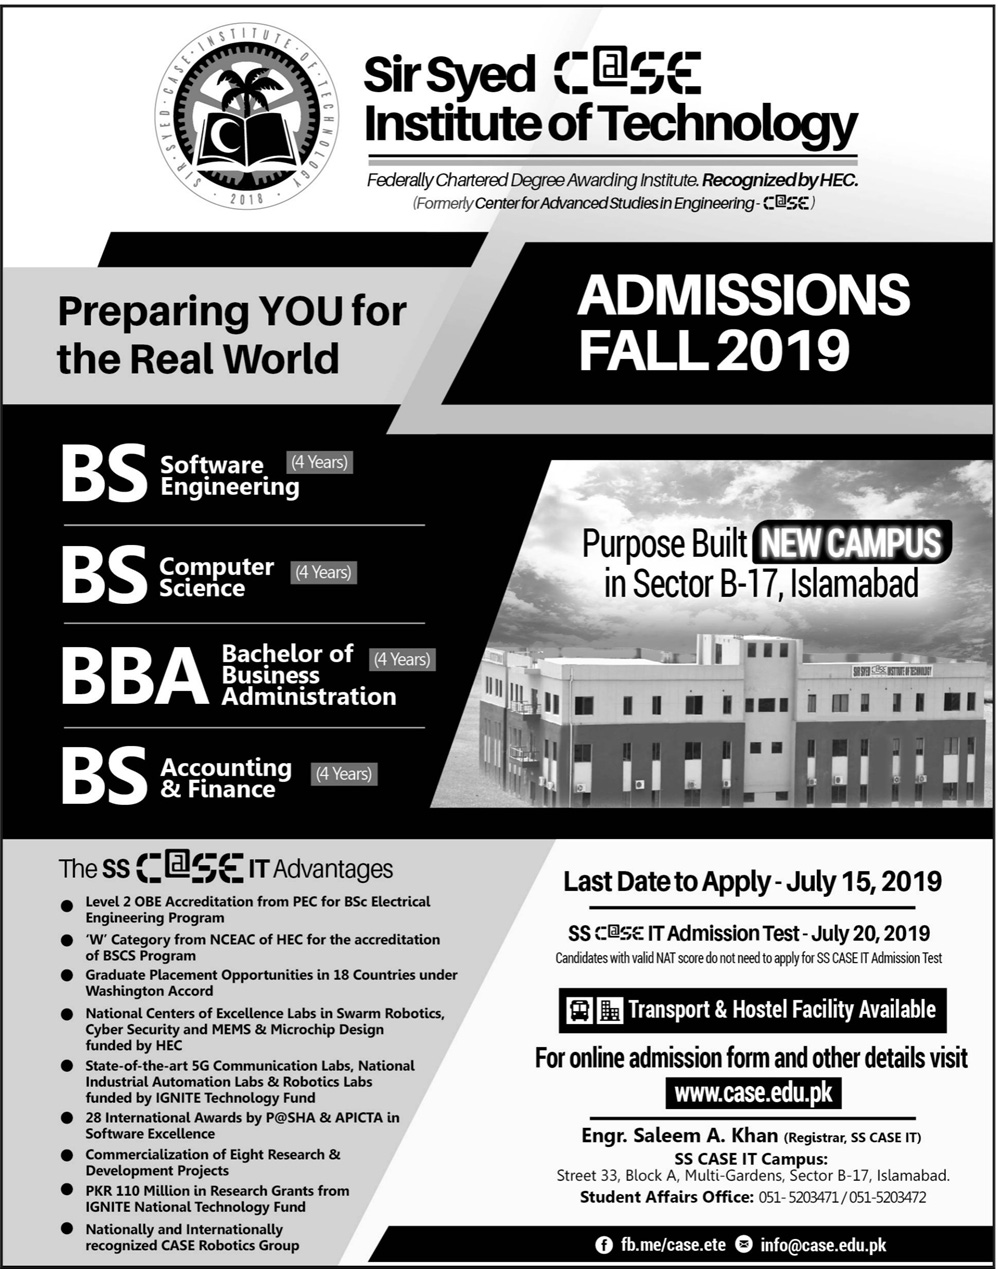 Sir Syed CASE Institute of Technology Admissions 2019 Result pk